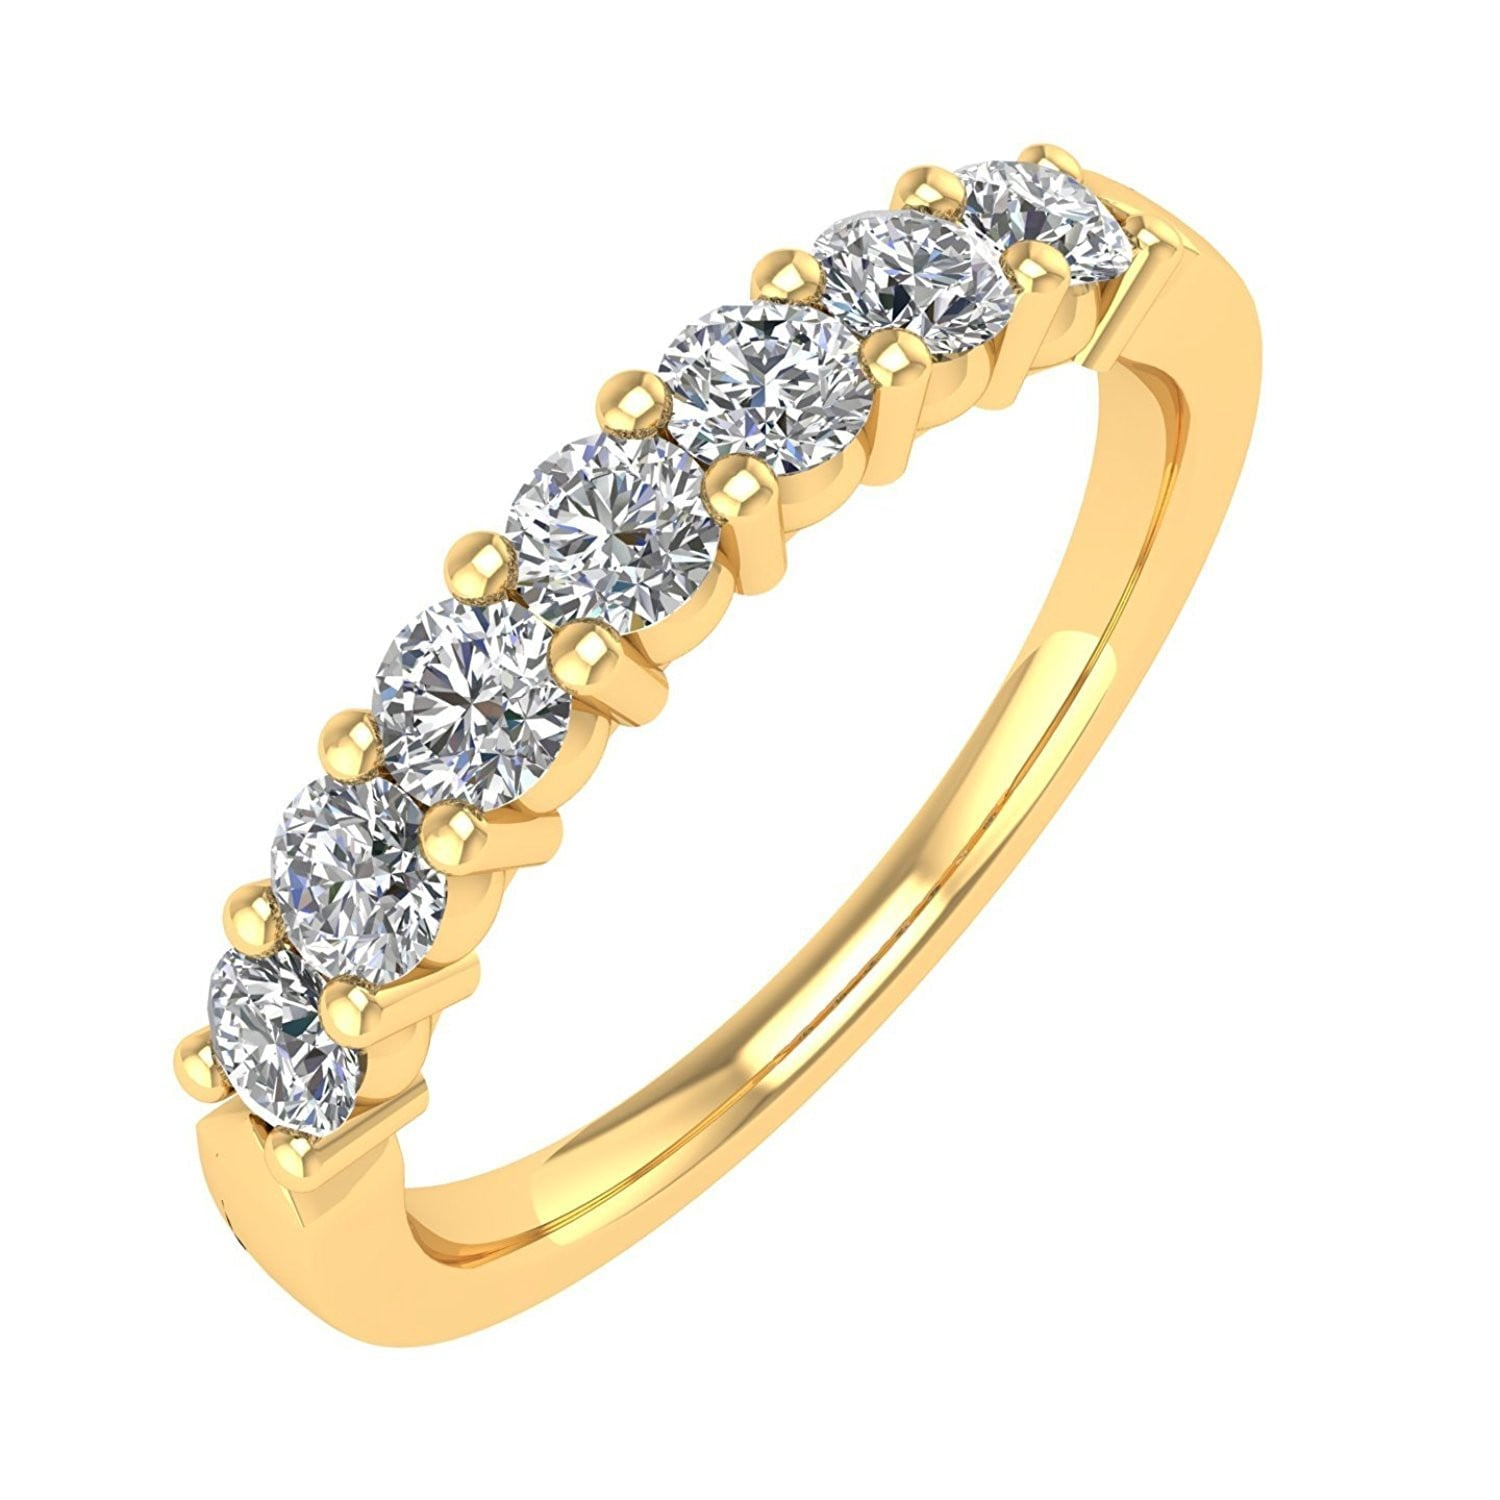 designs wedding rings yellow laurie product sarah diamond in engagement band gold stone ring